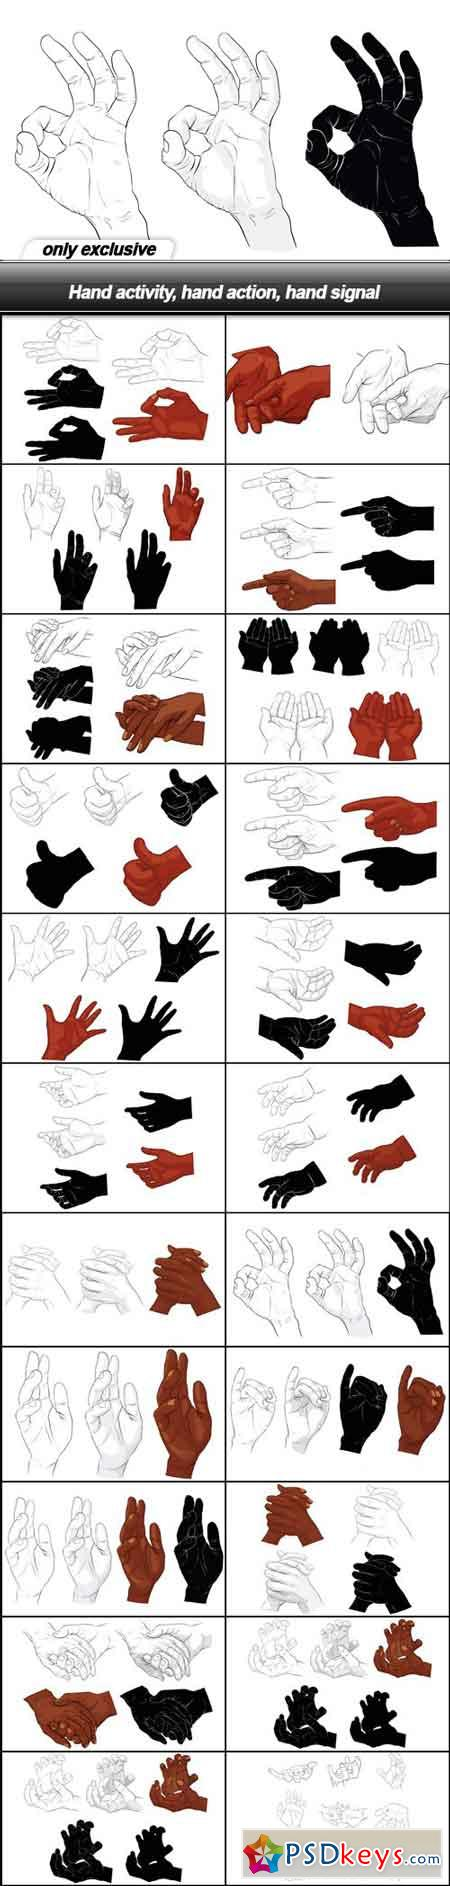 Hand activity, hand action, hand signal - 22 EPS